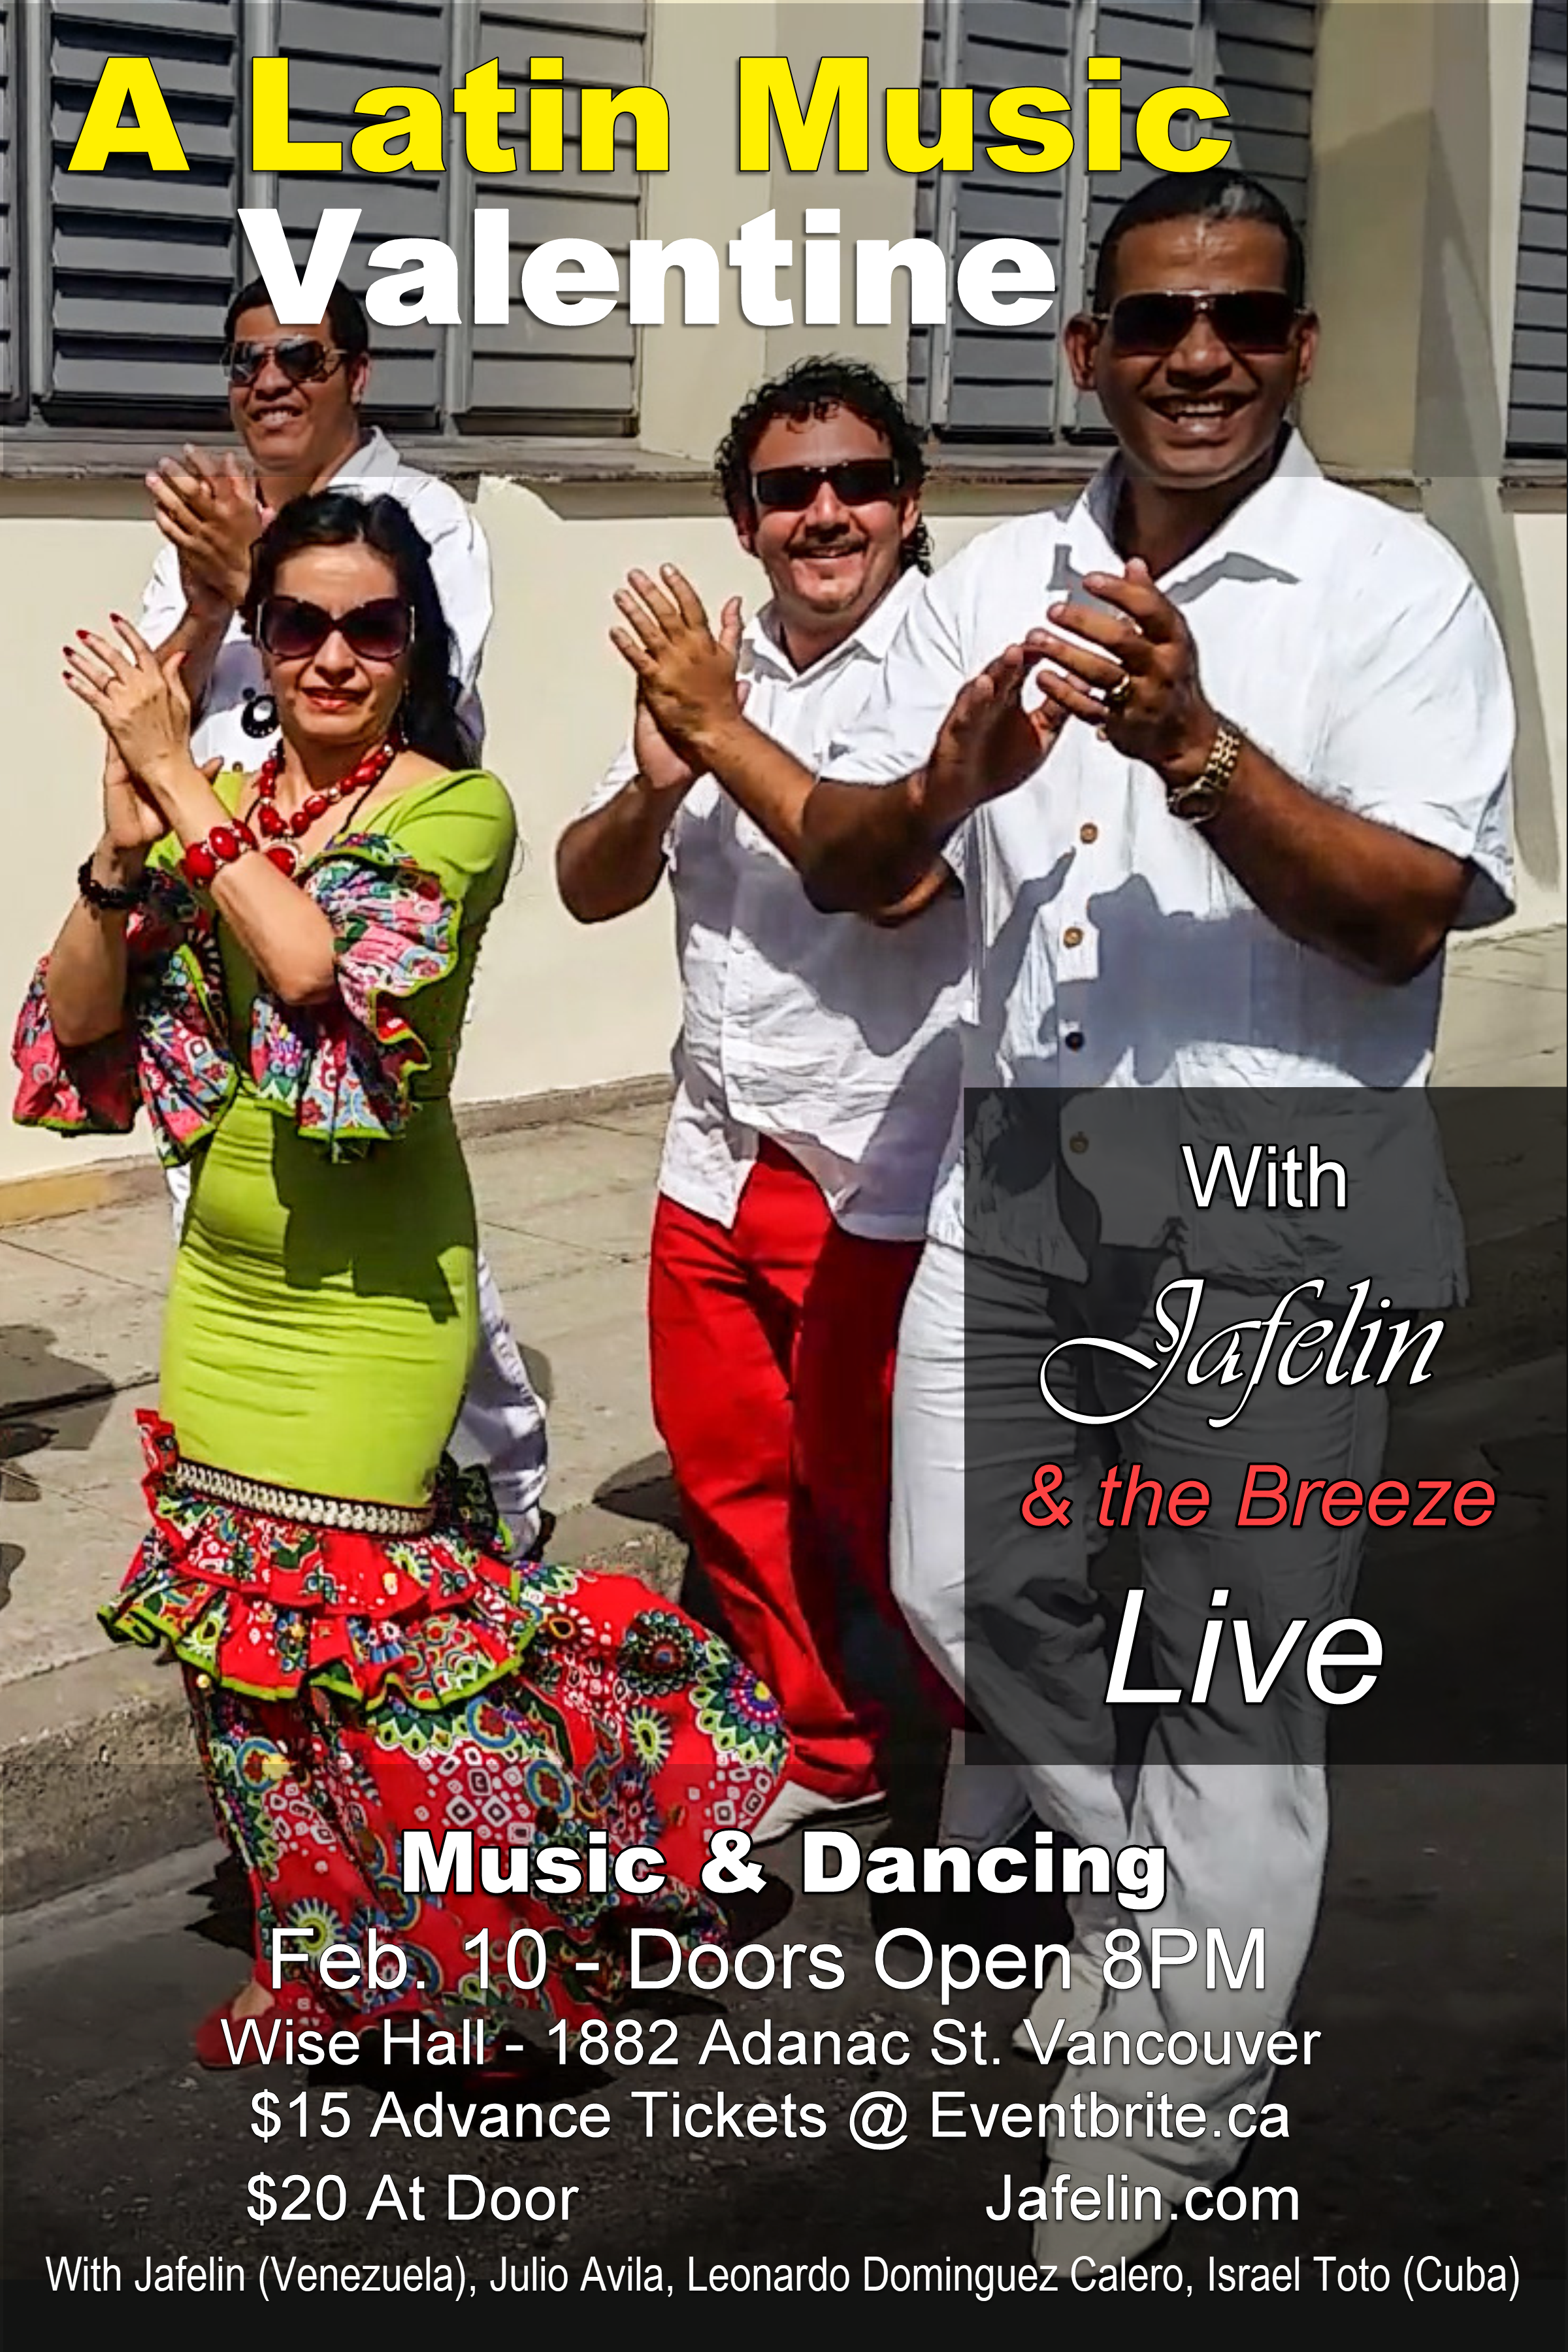 A Latin Music Valentine with Jafelin & the Breeze band – Wise Hall